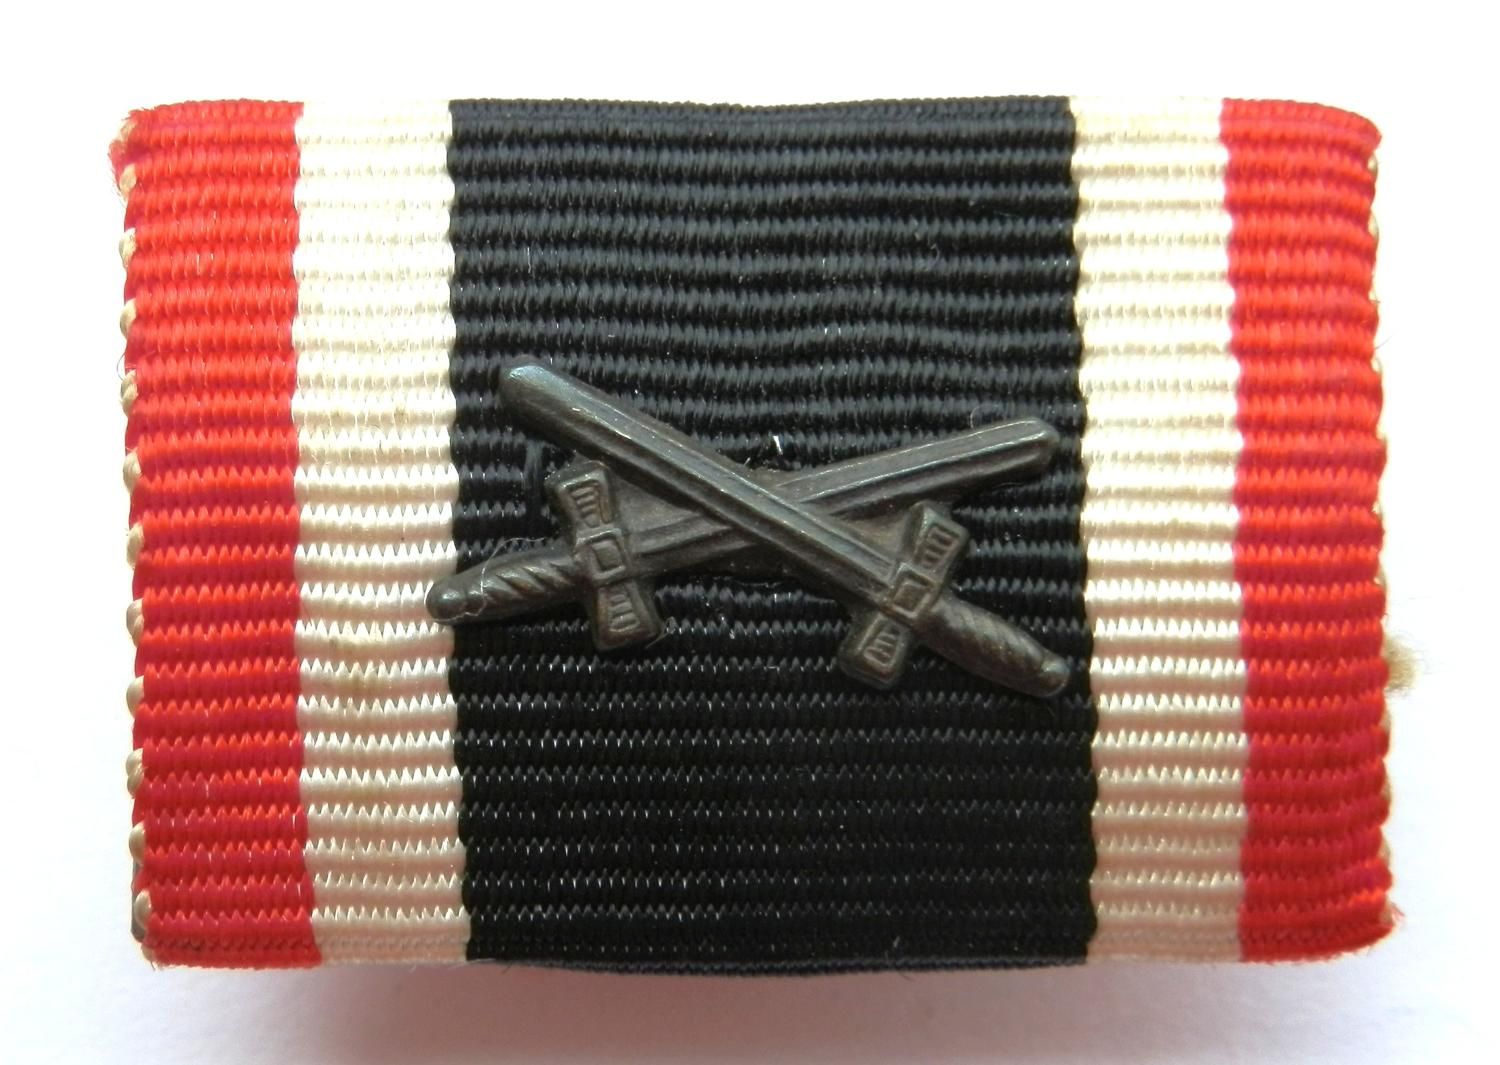 Merrit Cross, 2nd Class with Swords  Medal Ribbon Bar.